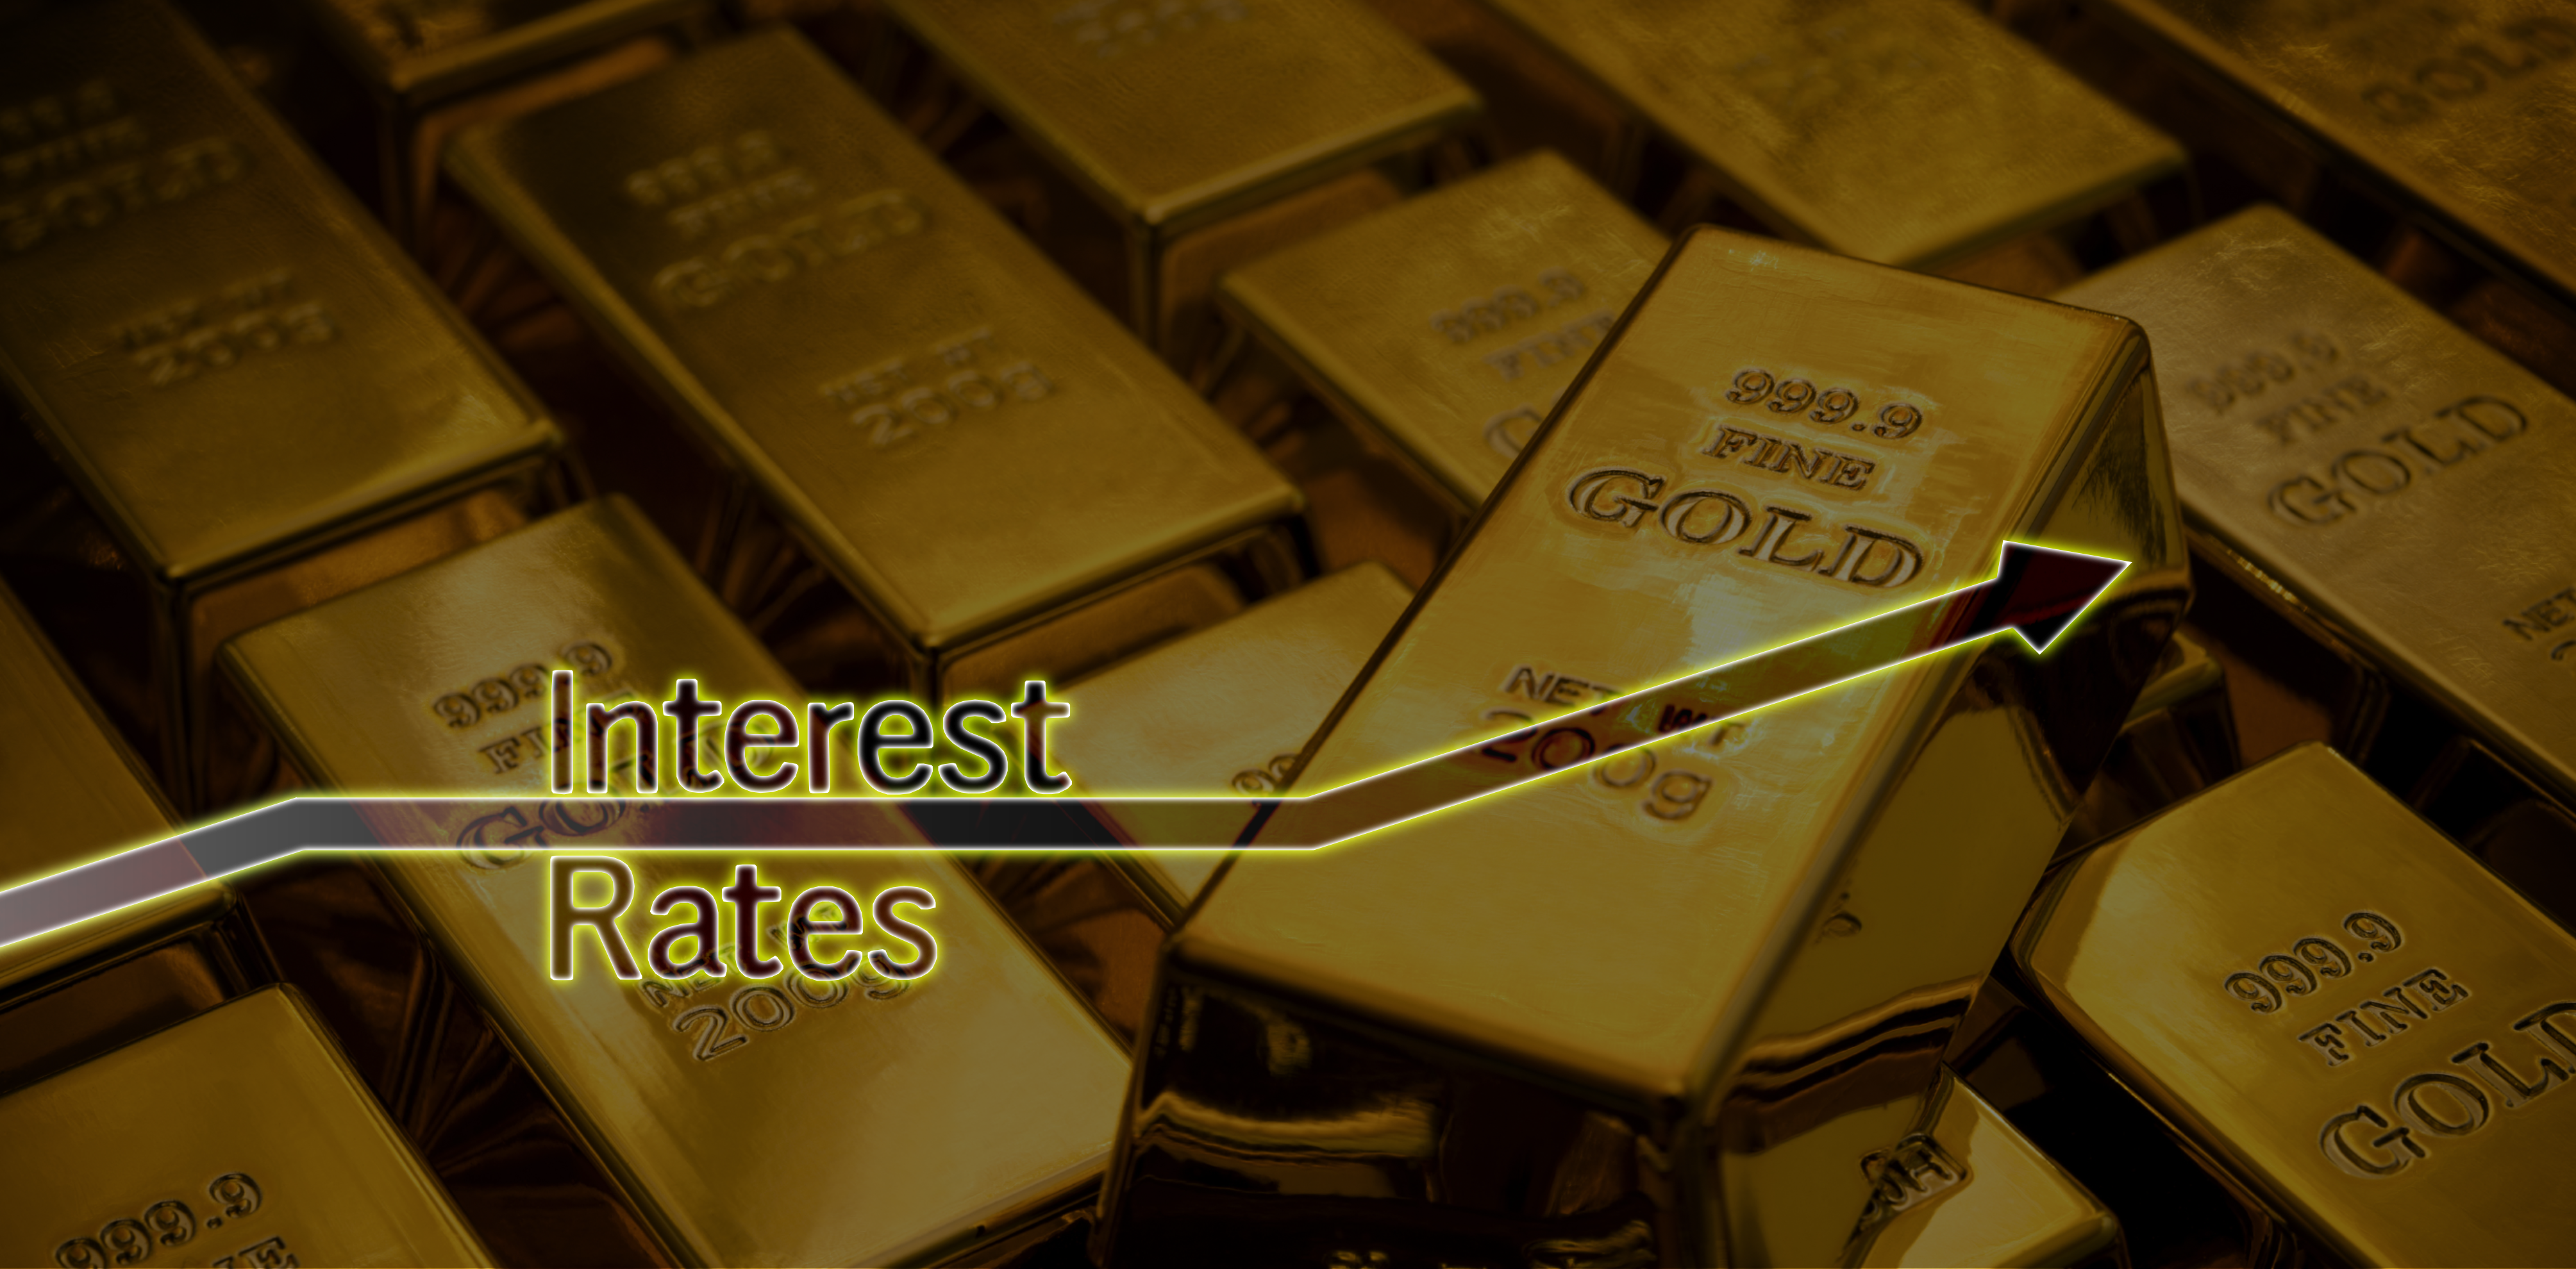 GoldCore: Fed Raised Rates 0.25% – Rising Rates Positive For Gold